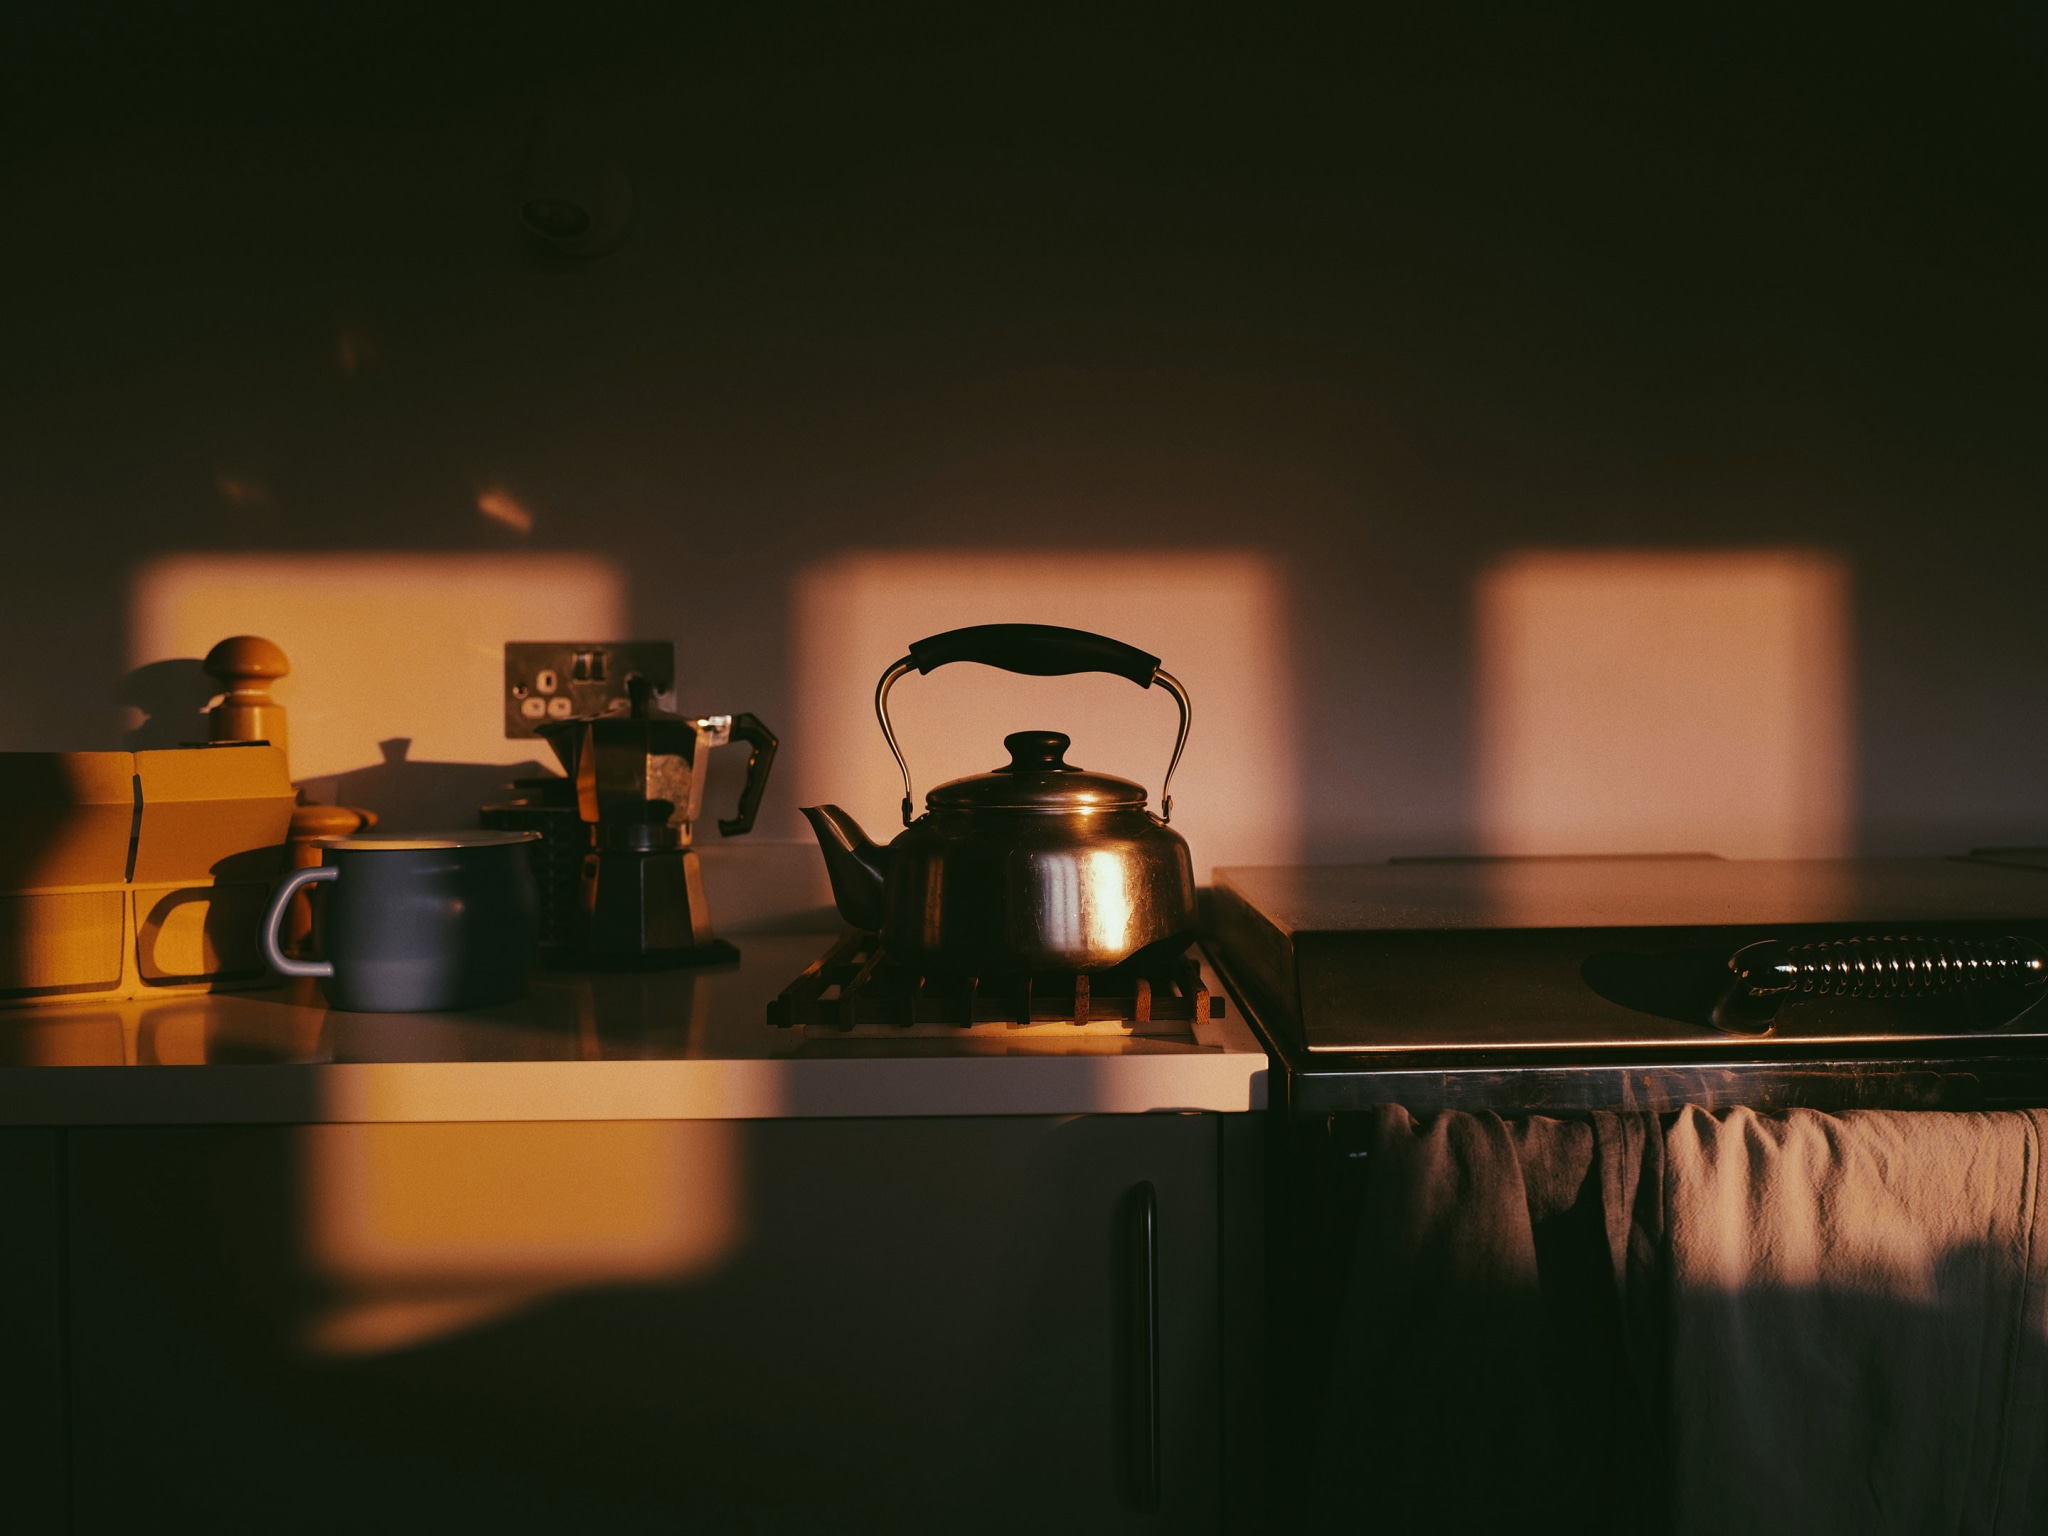 A kettle in a kitchen in the morning light.